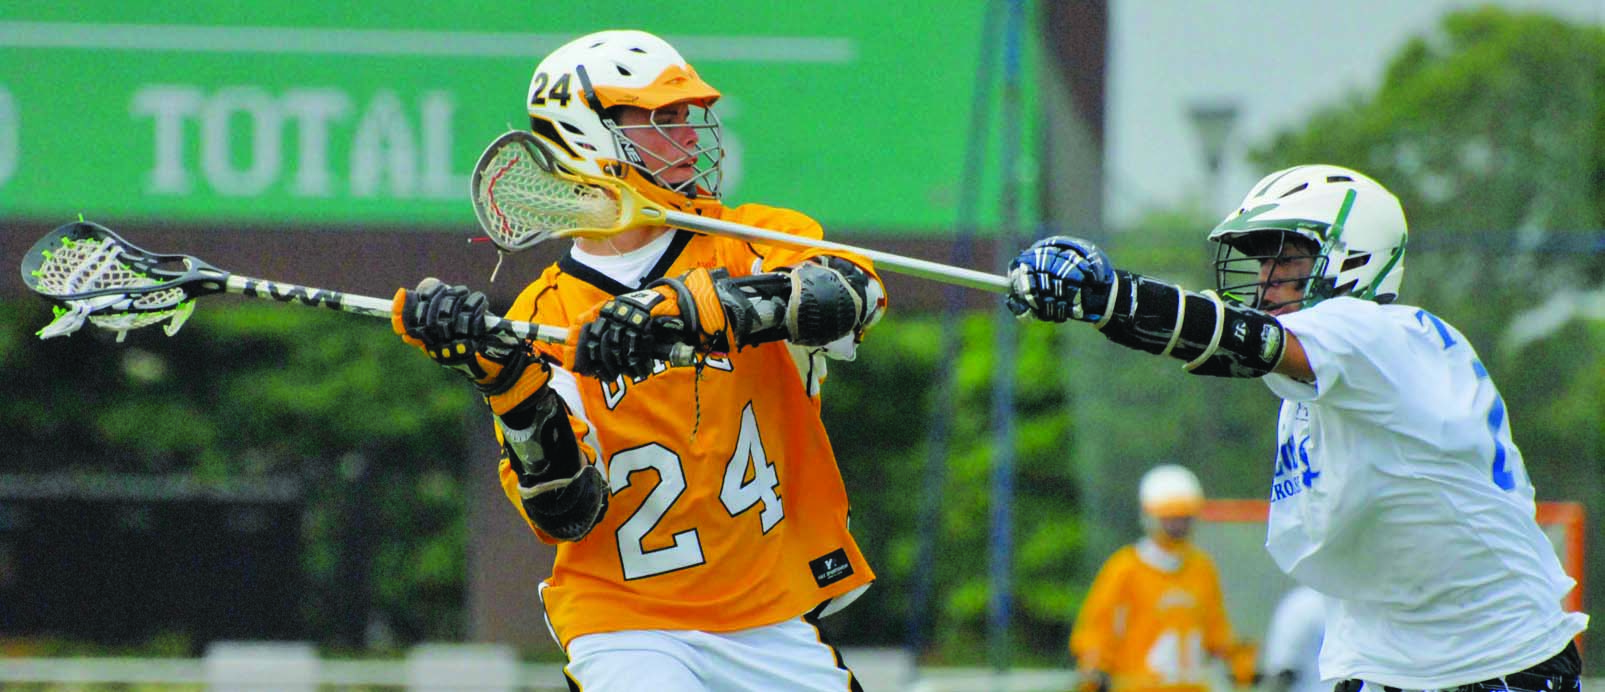 Two lacrosse players lunge for ball